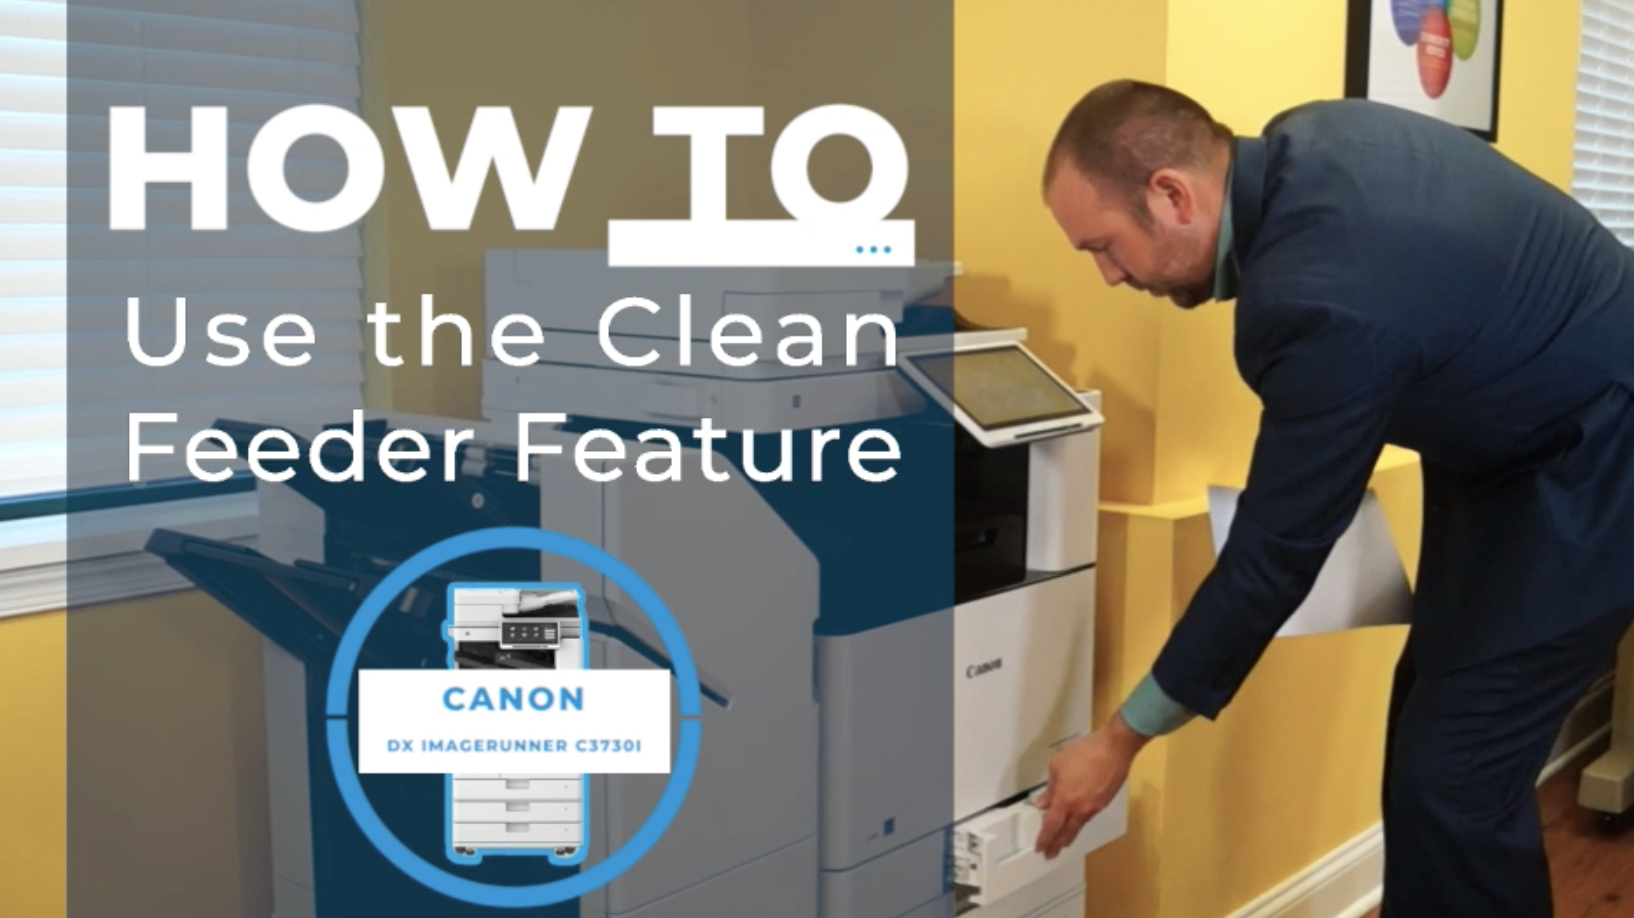 How to Use the Clean Feeder Feature